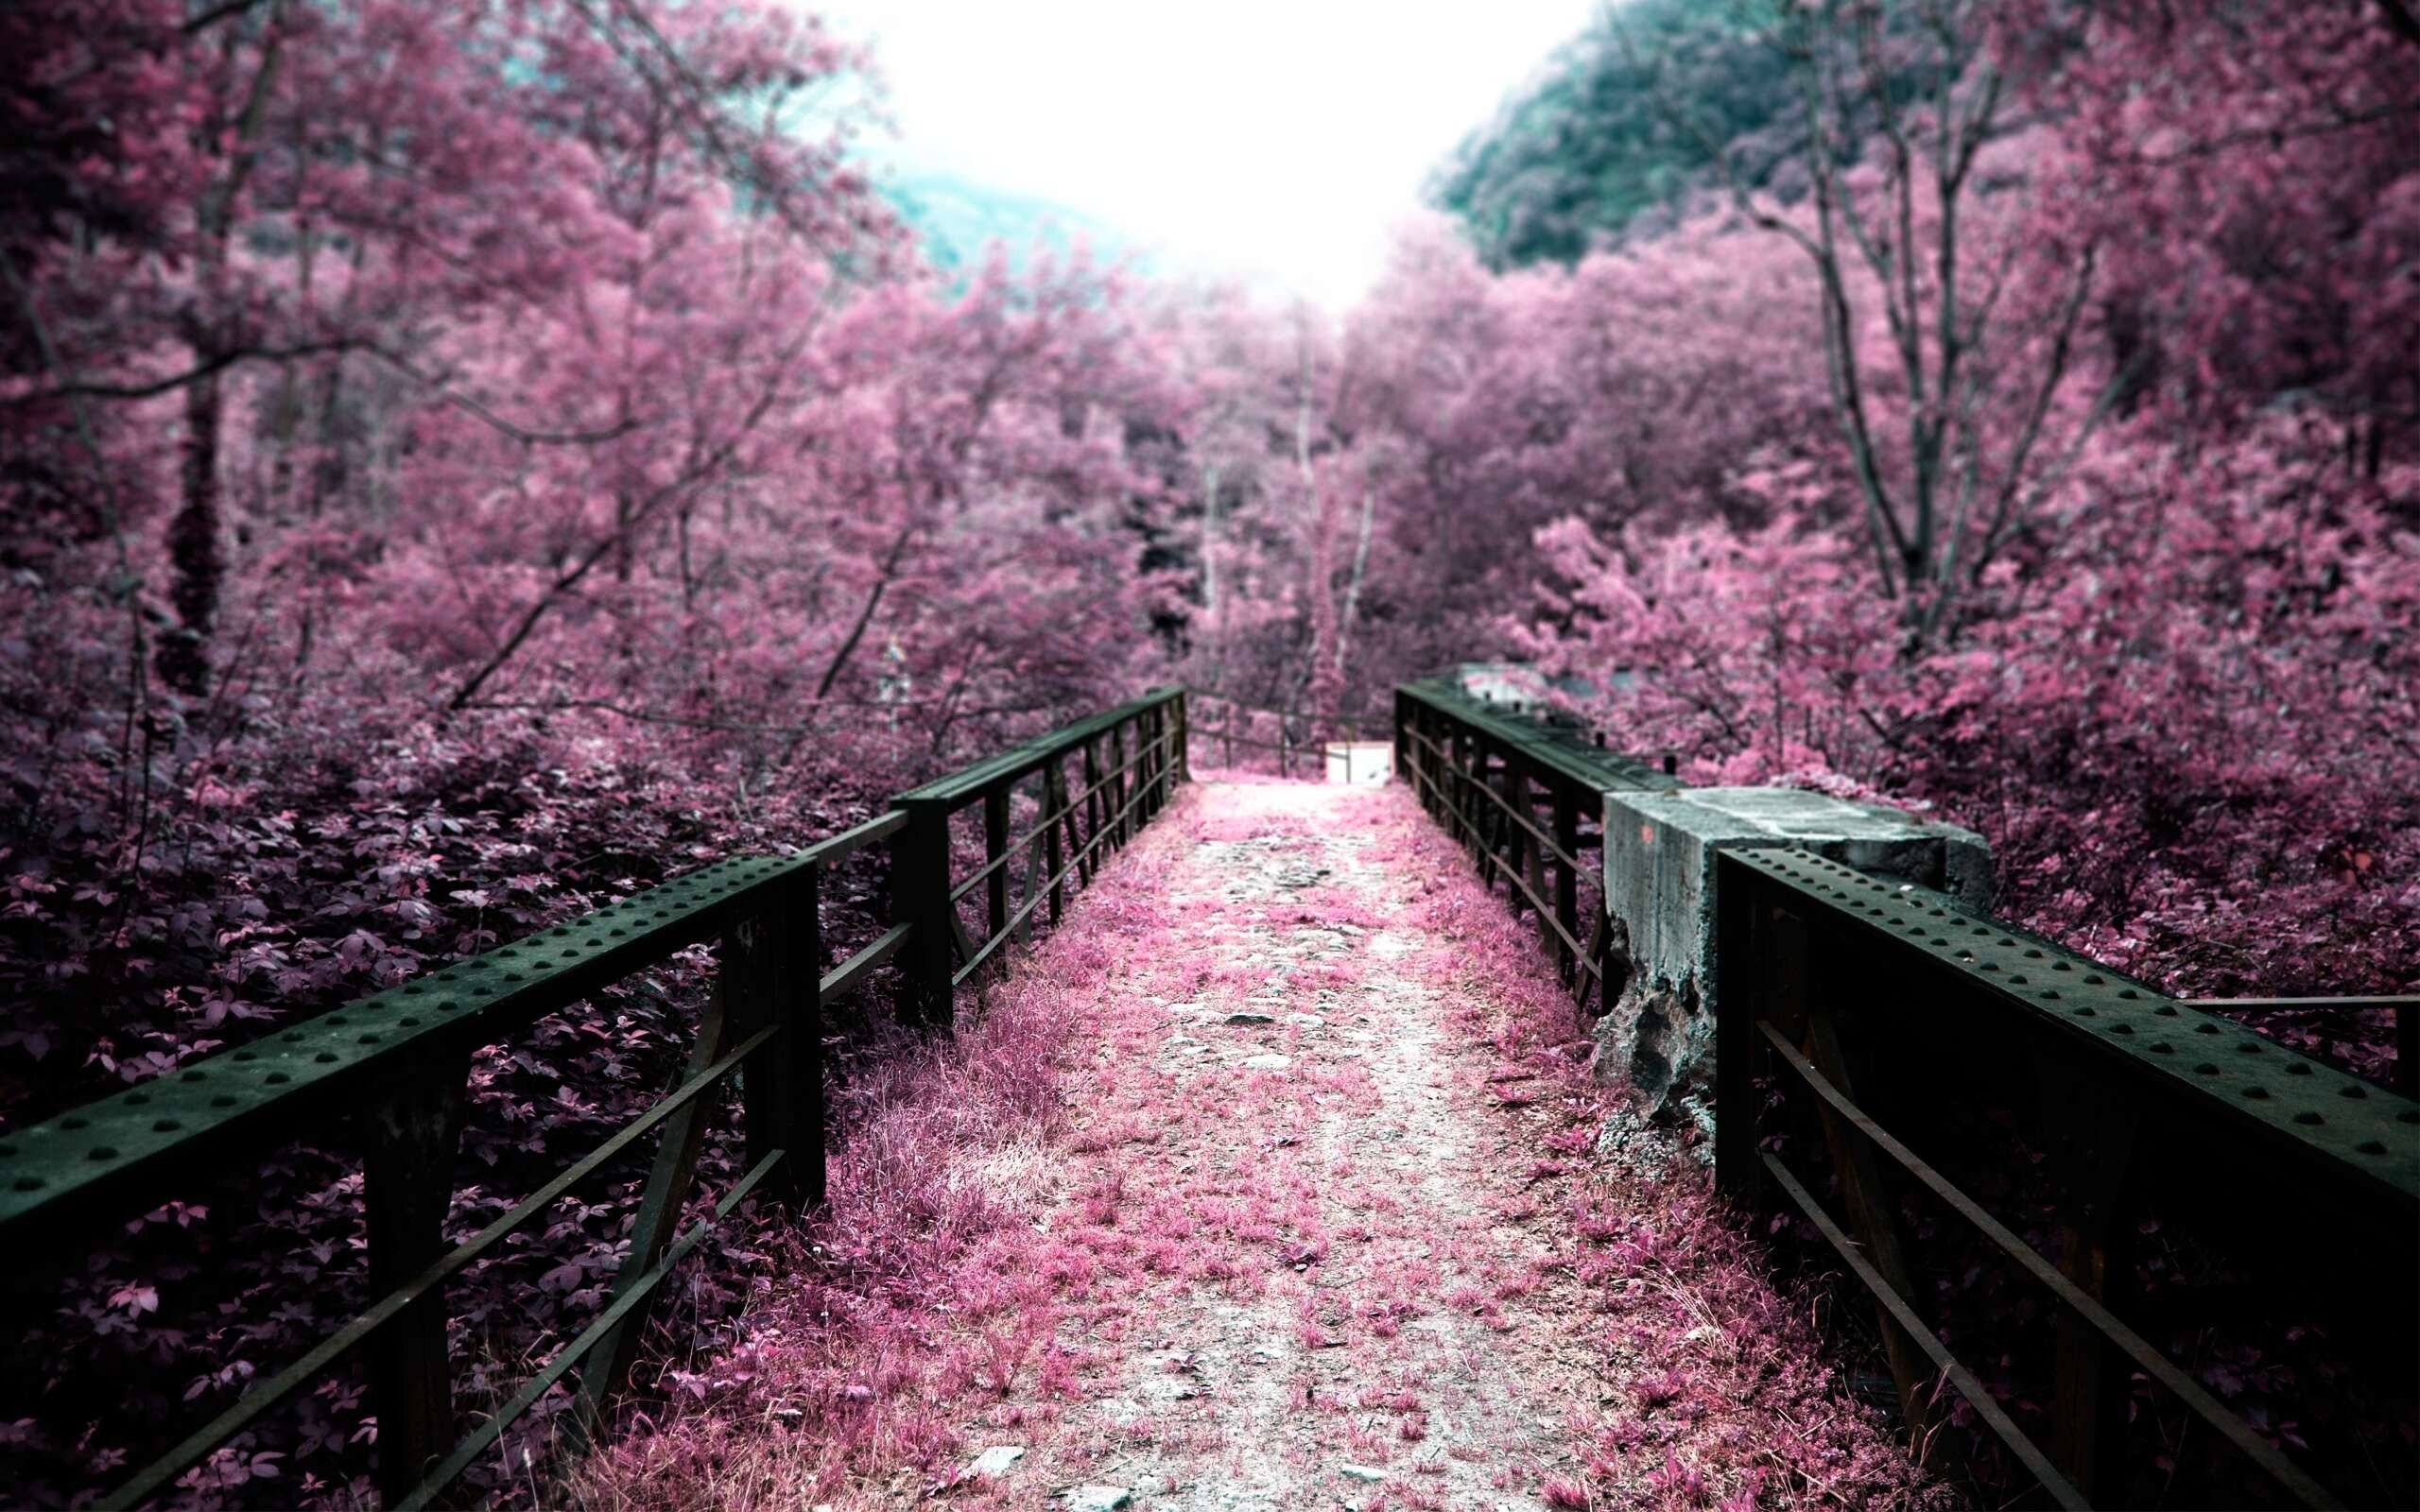 Cherry blossoms on a bridge hd wallpaper background HD Wallpapers 2560x1600